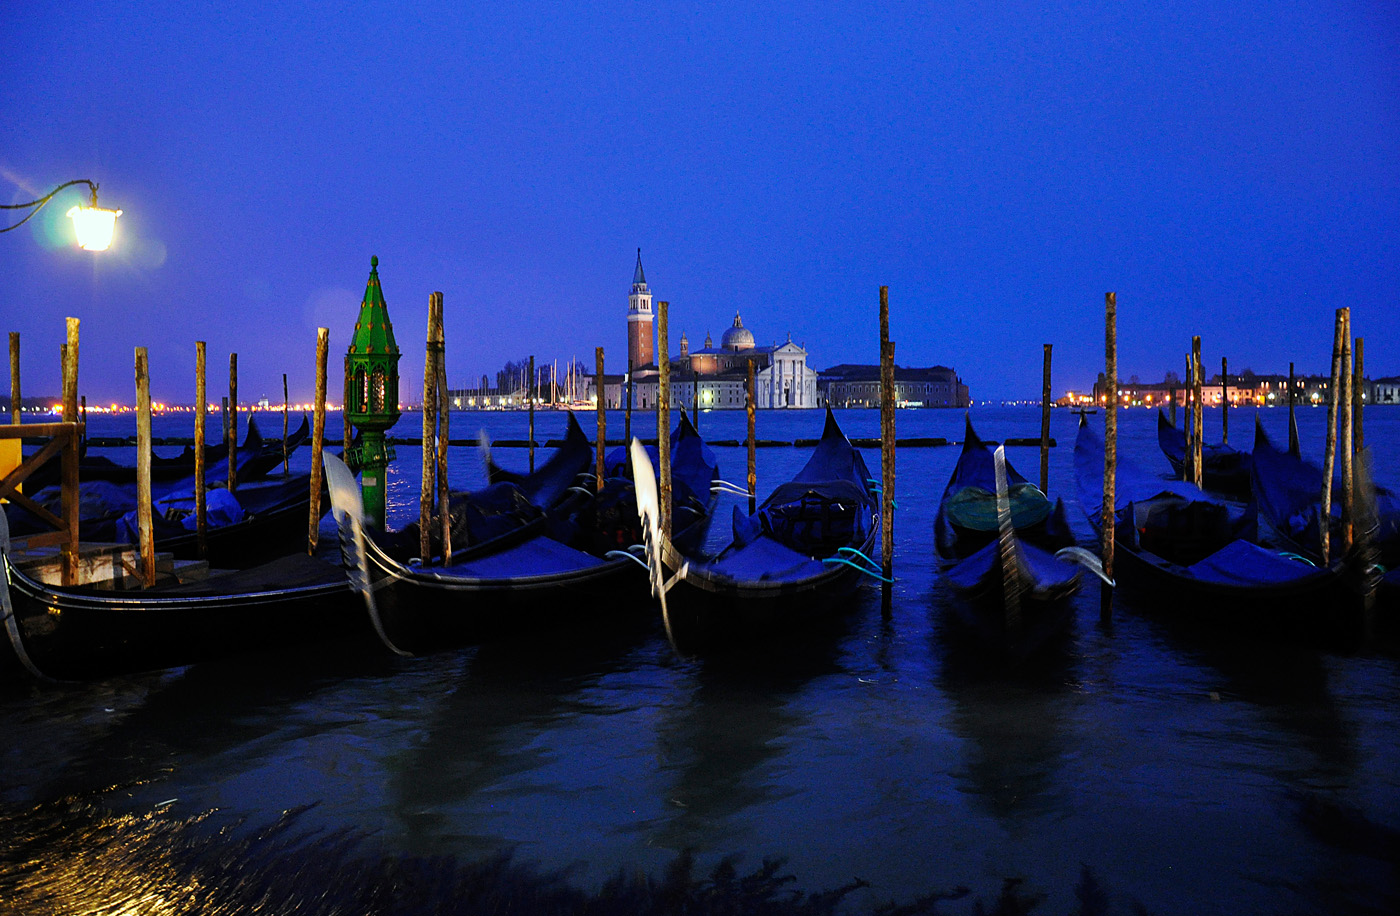 Projected Image - 1st Place: Venice at Dusk by Neil Morgan